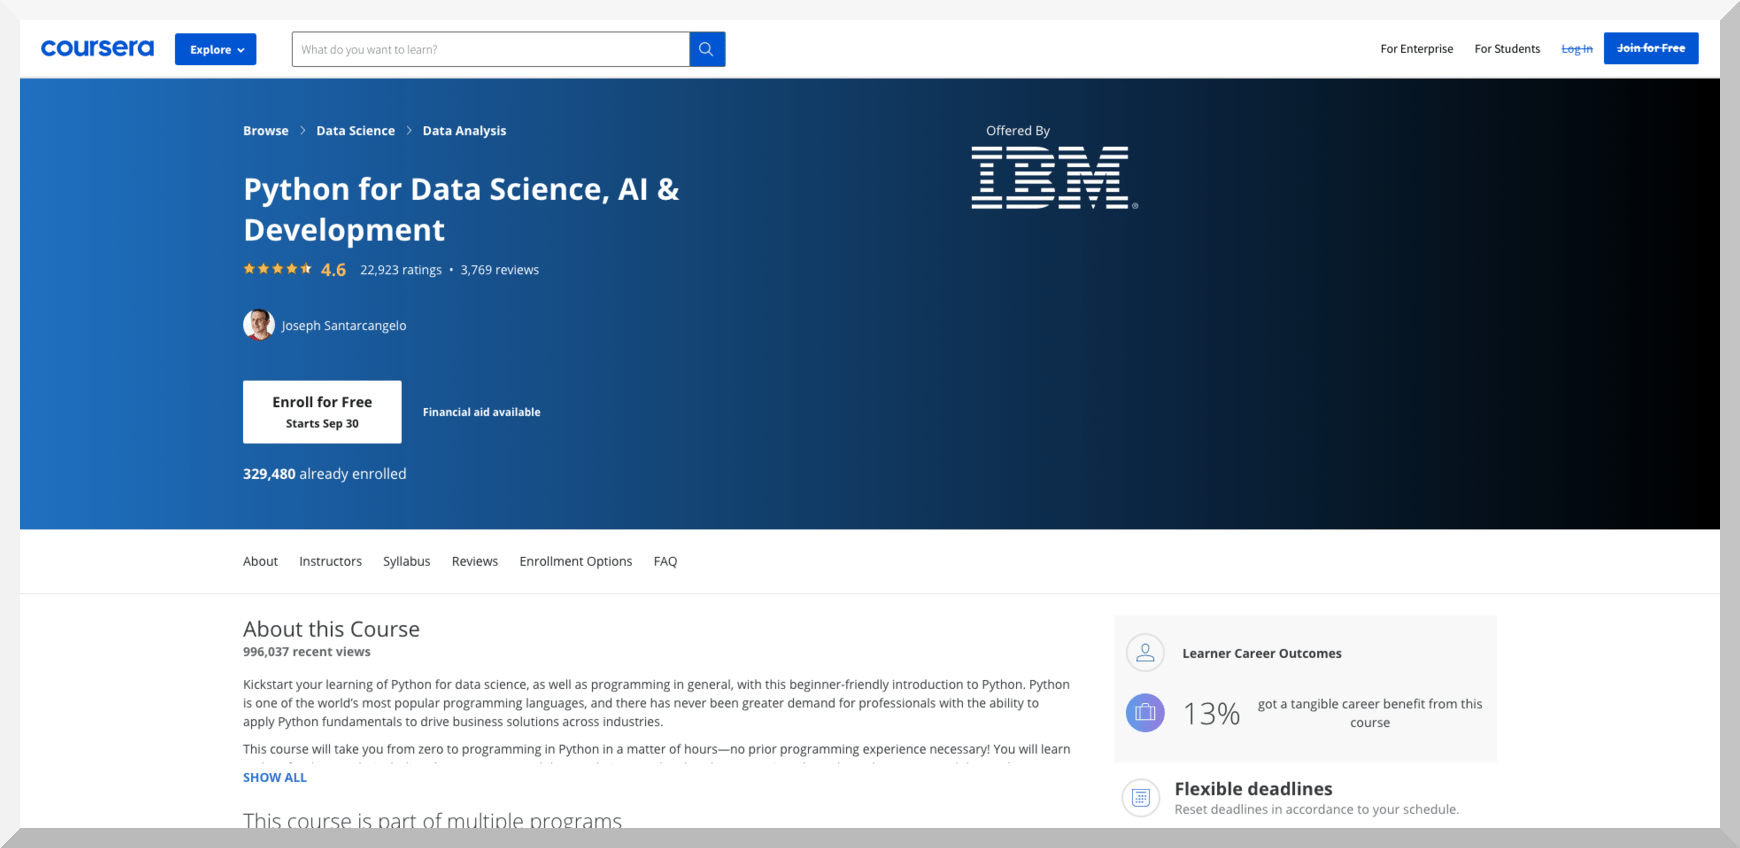 Python for Data Science, AI, and Development by IBM – Coursera